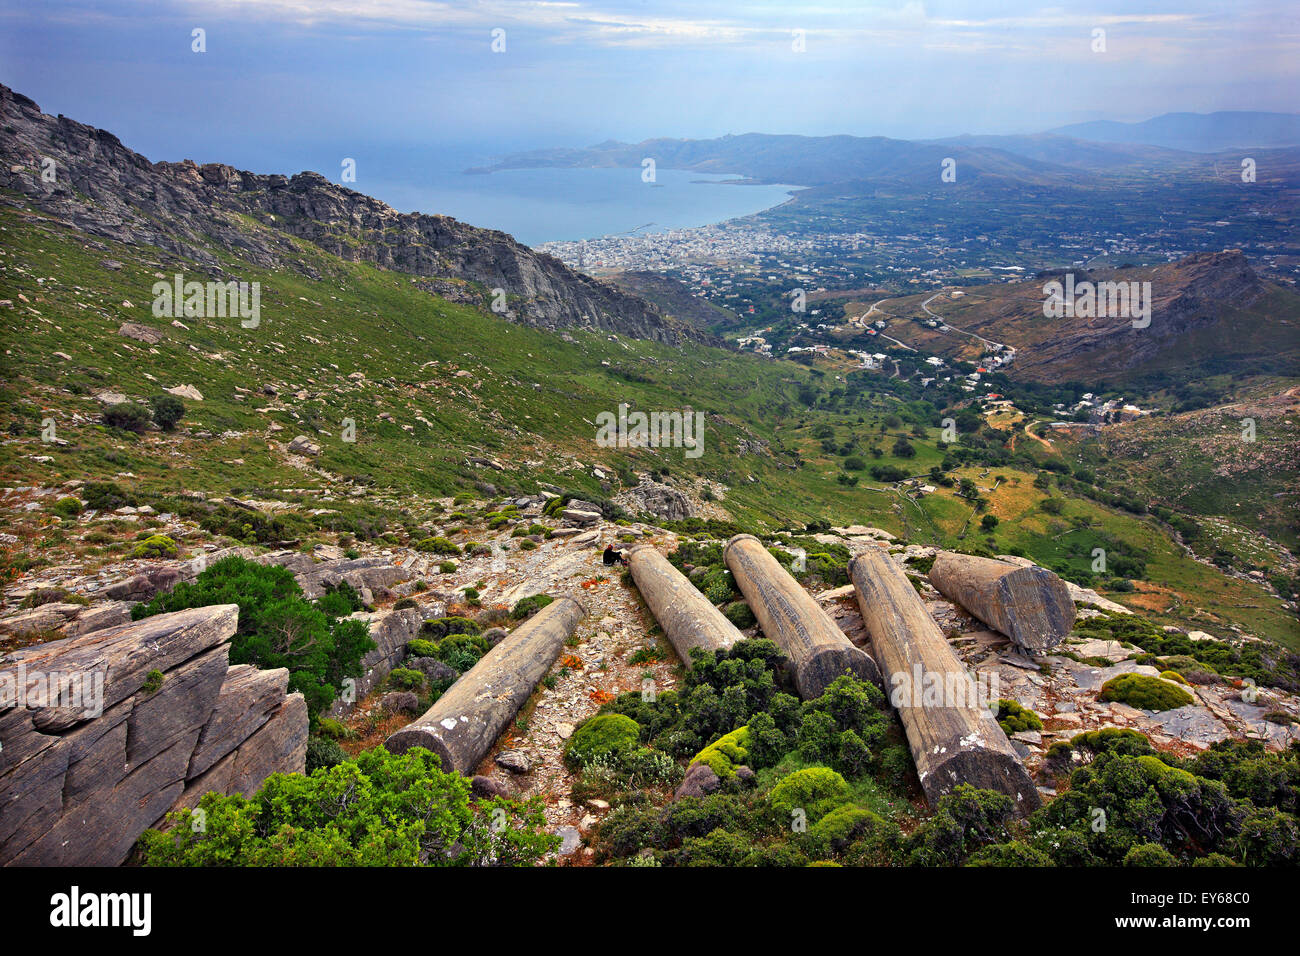 Forgotten ancient columns at an ancient quarry on the slopes of Mount Ochi ('Oche'), Evia ('Evvoia') - Stock Image